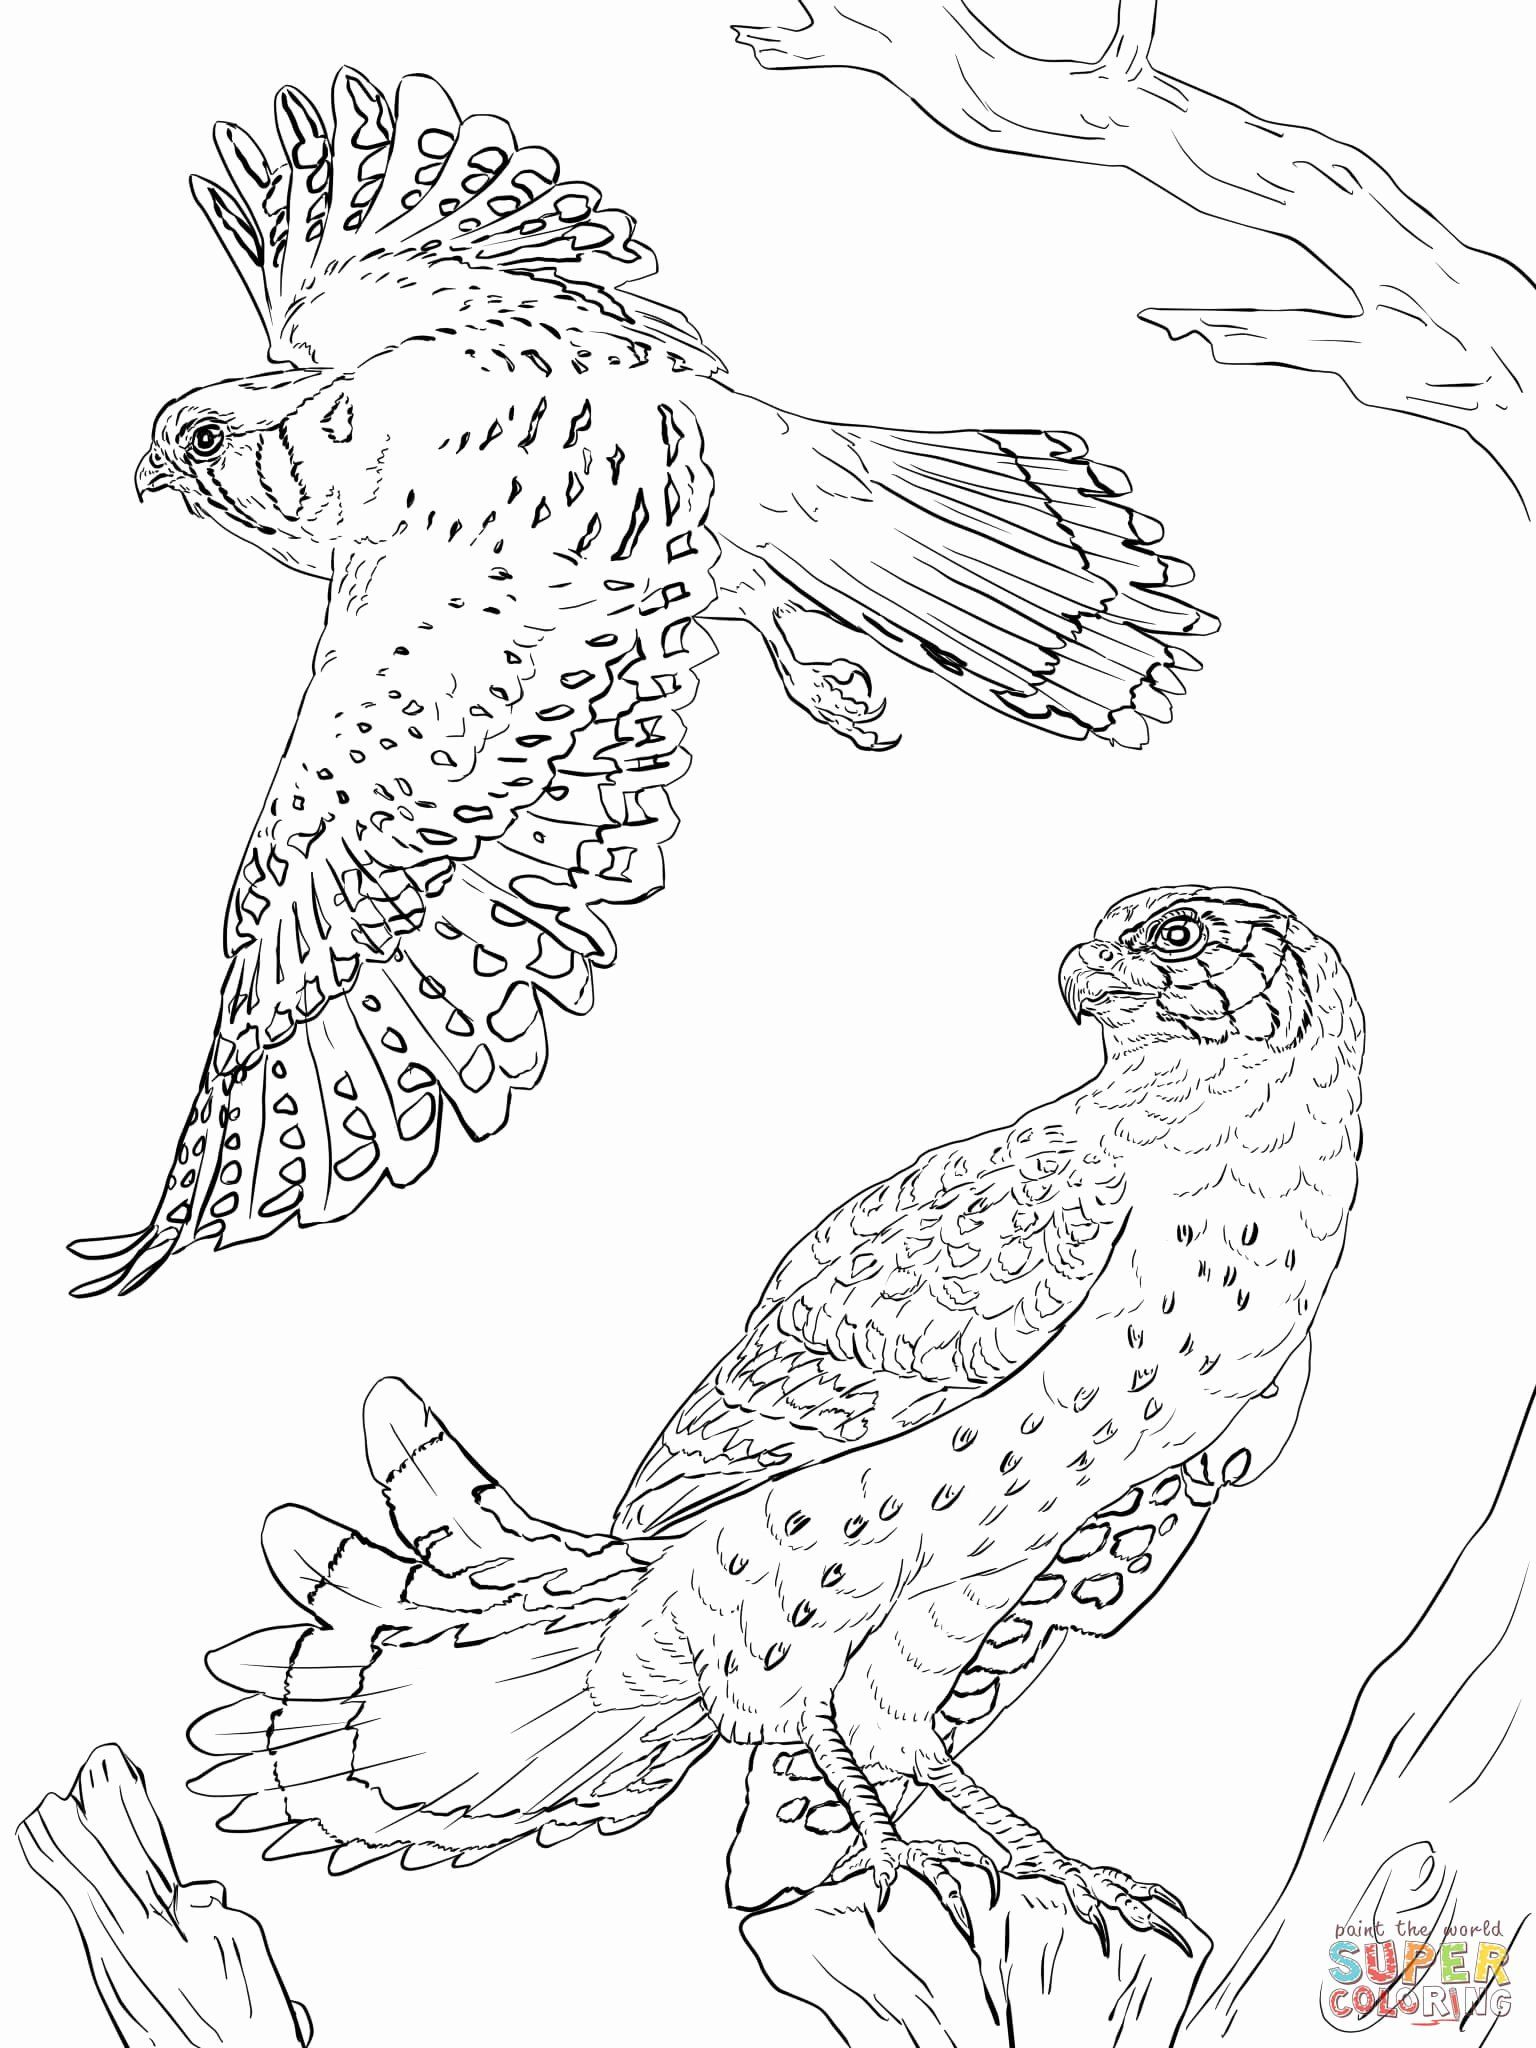 Peregrine Falcon Coloring Page Awesome Peregrine Falcon Clipart Coloring Page Pencil A Spring Coloring Pages Animal Coloring Pages Coloring Pages Inspirational